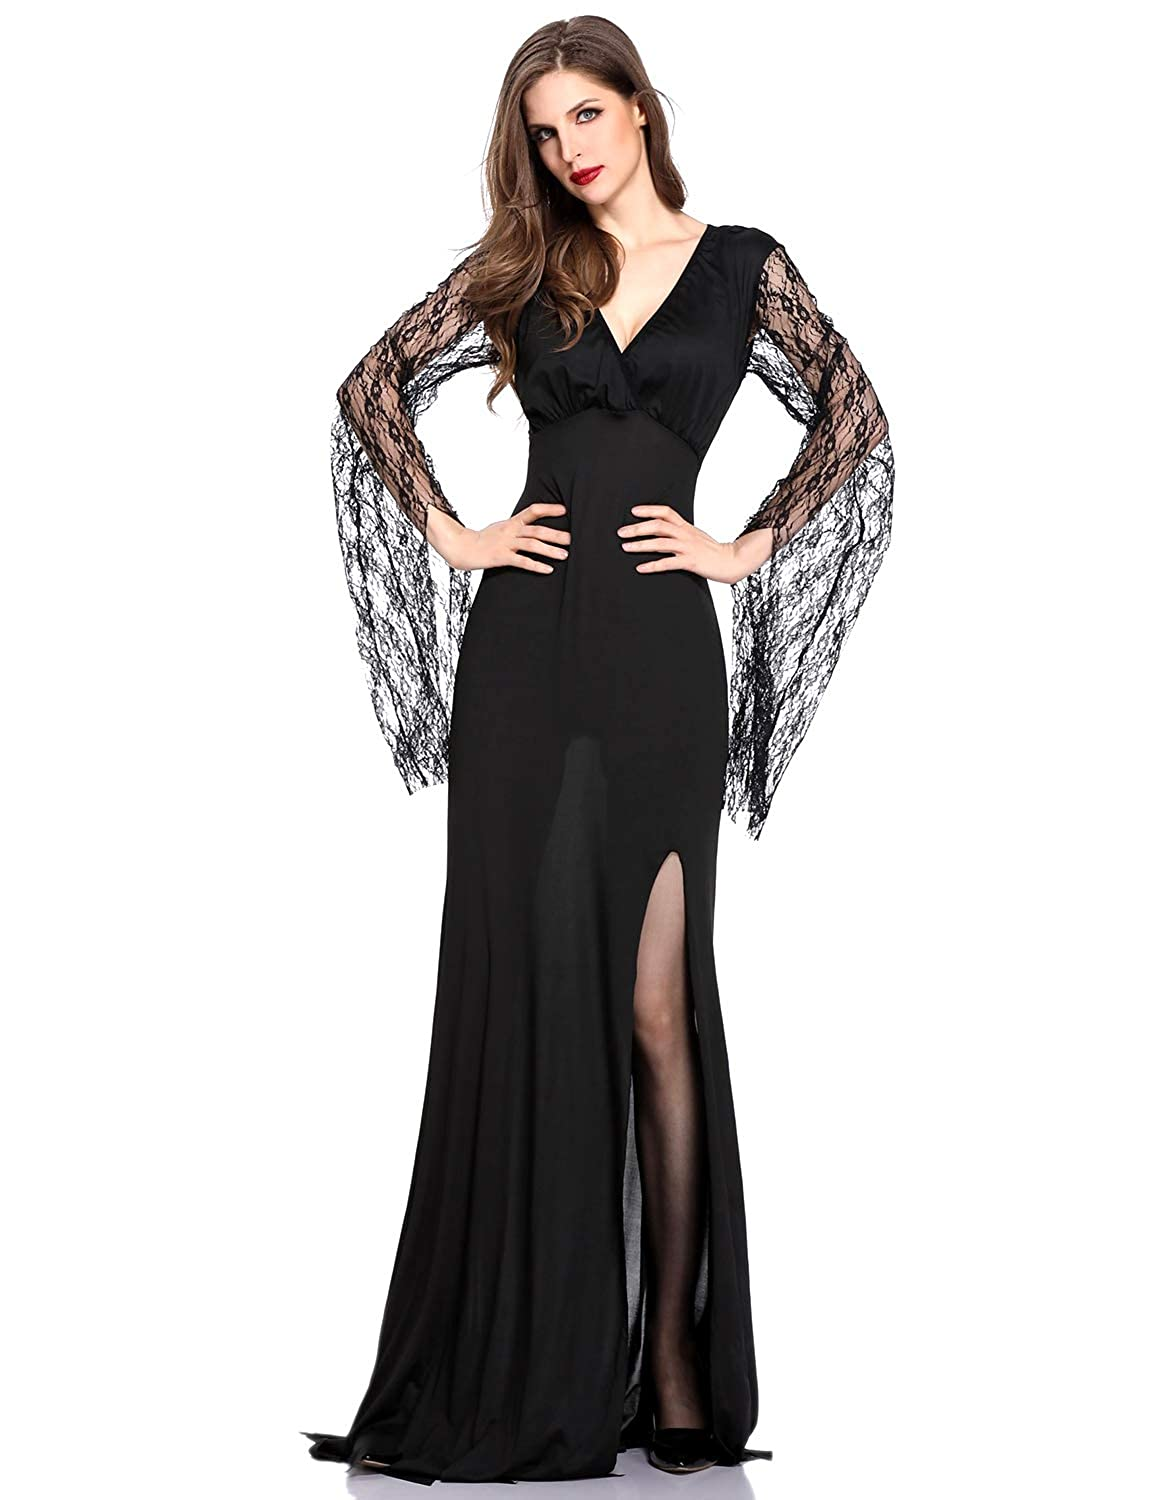 65719ac791fa Amazon.com: DoLoveY Halloween Classic Witch Costume Women Black Queen Long Dress  Cosplay Vampire: Clothing